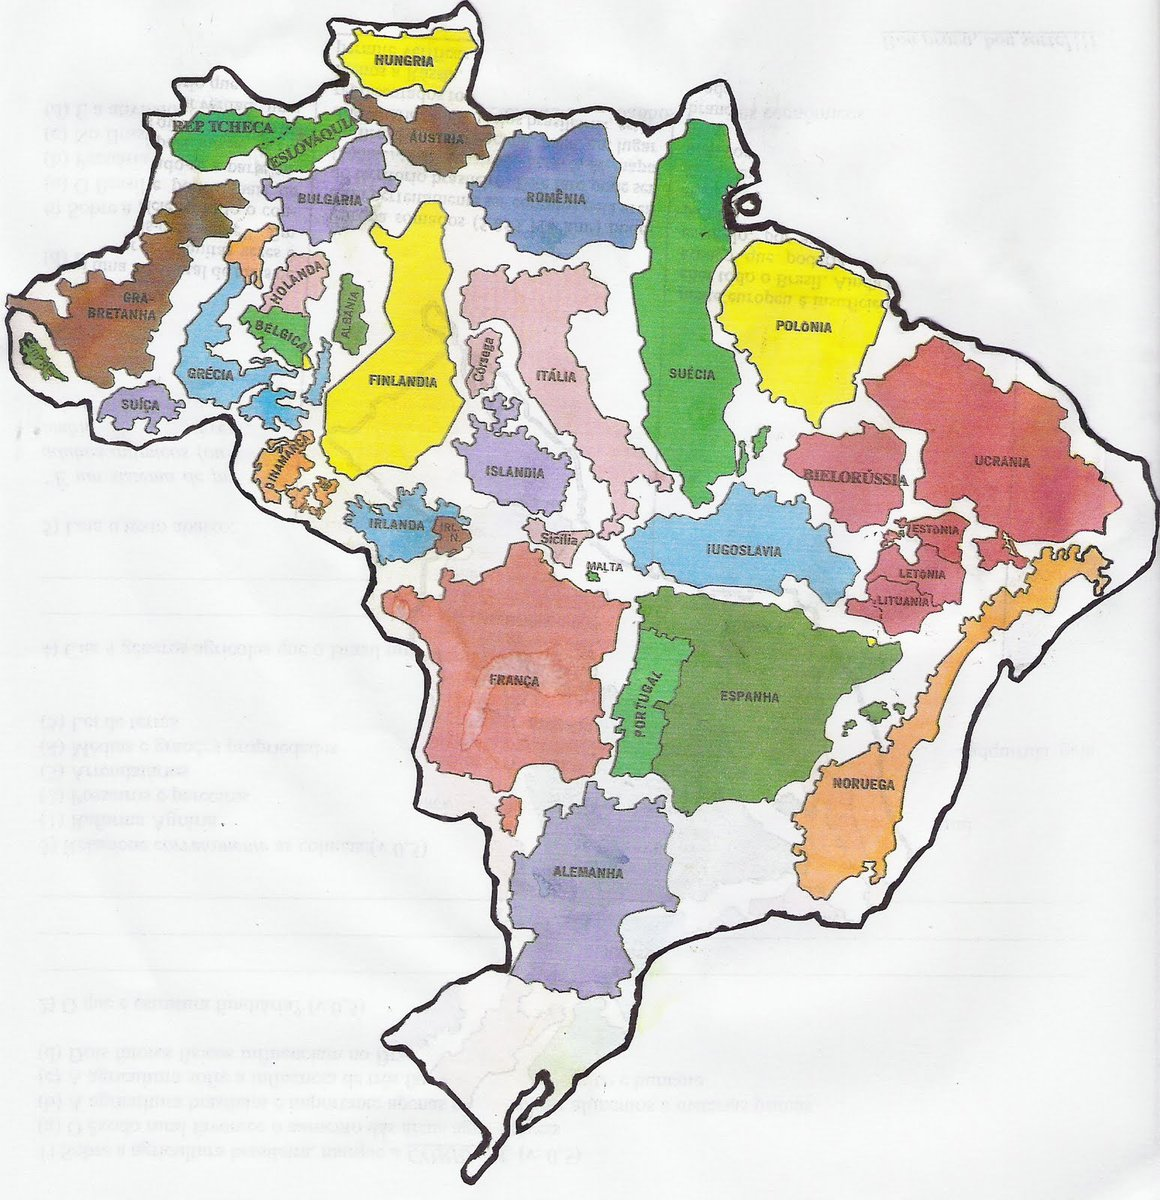 Amazing maps on twitter brazil is not a small country source amazing maps on twitter brazil is not a small country source reddit user supersamuca gumiabroncs Choice Image